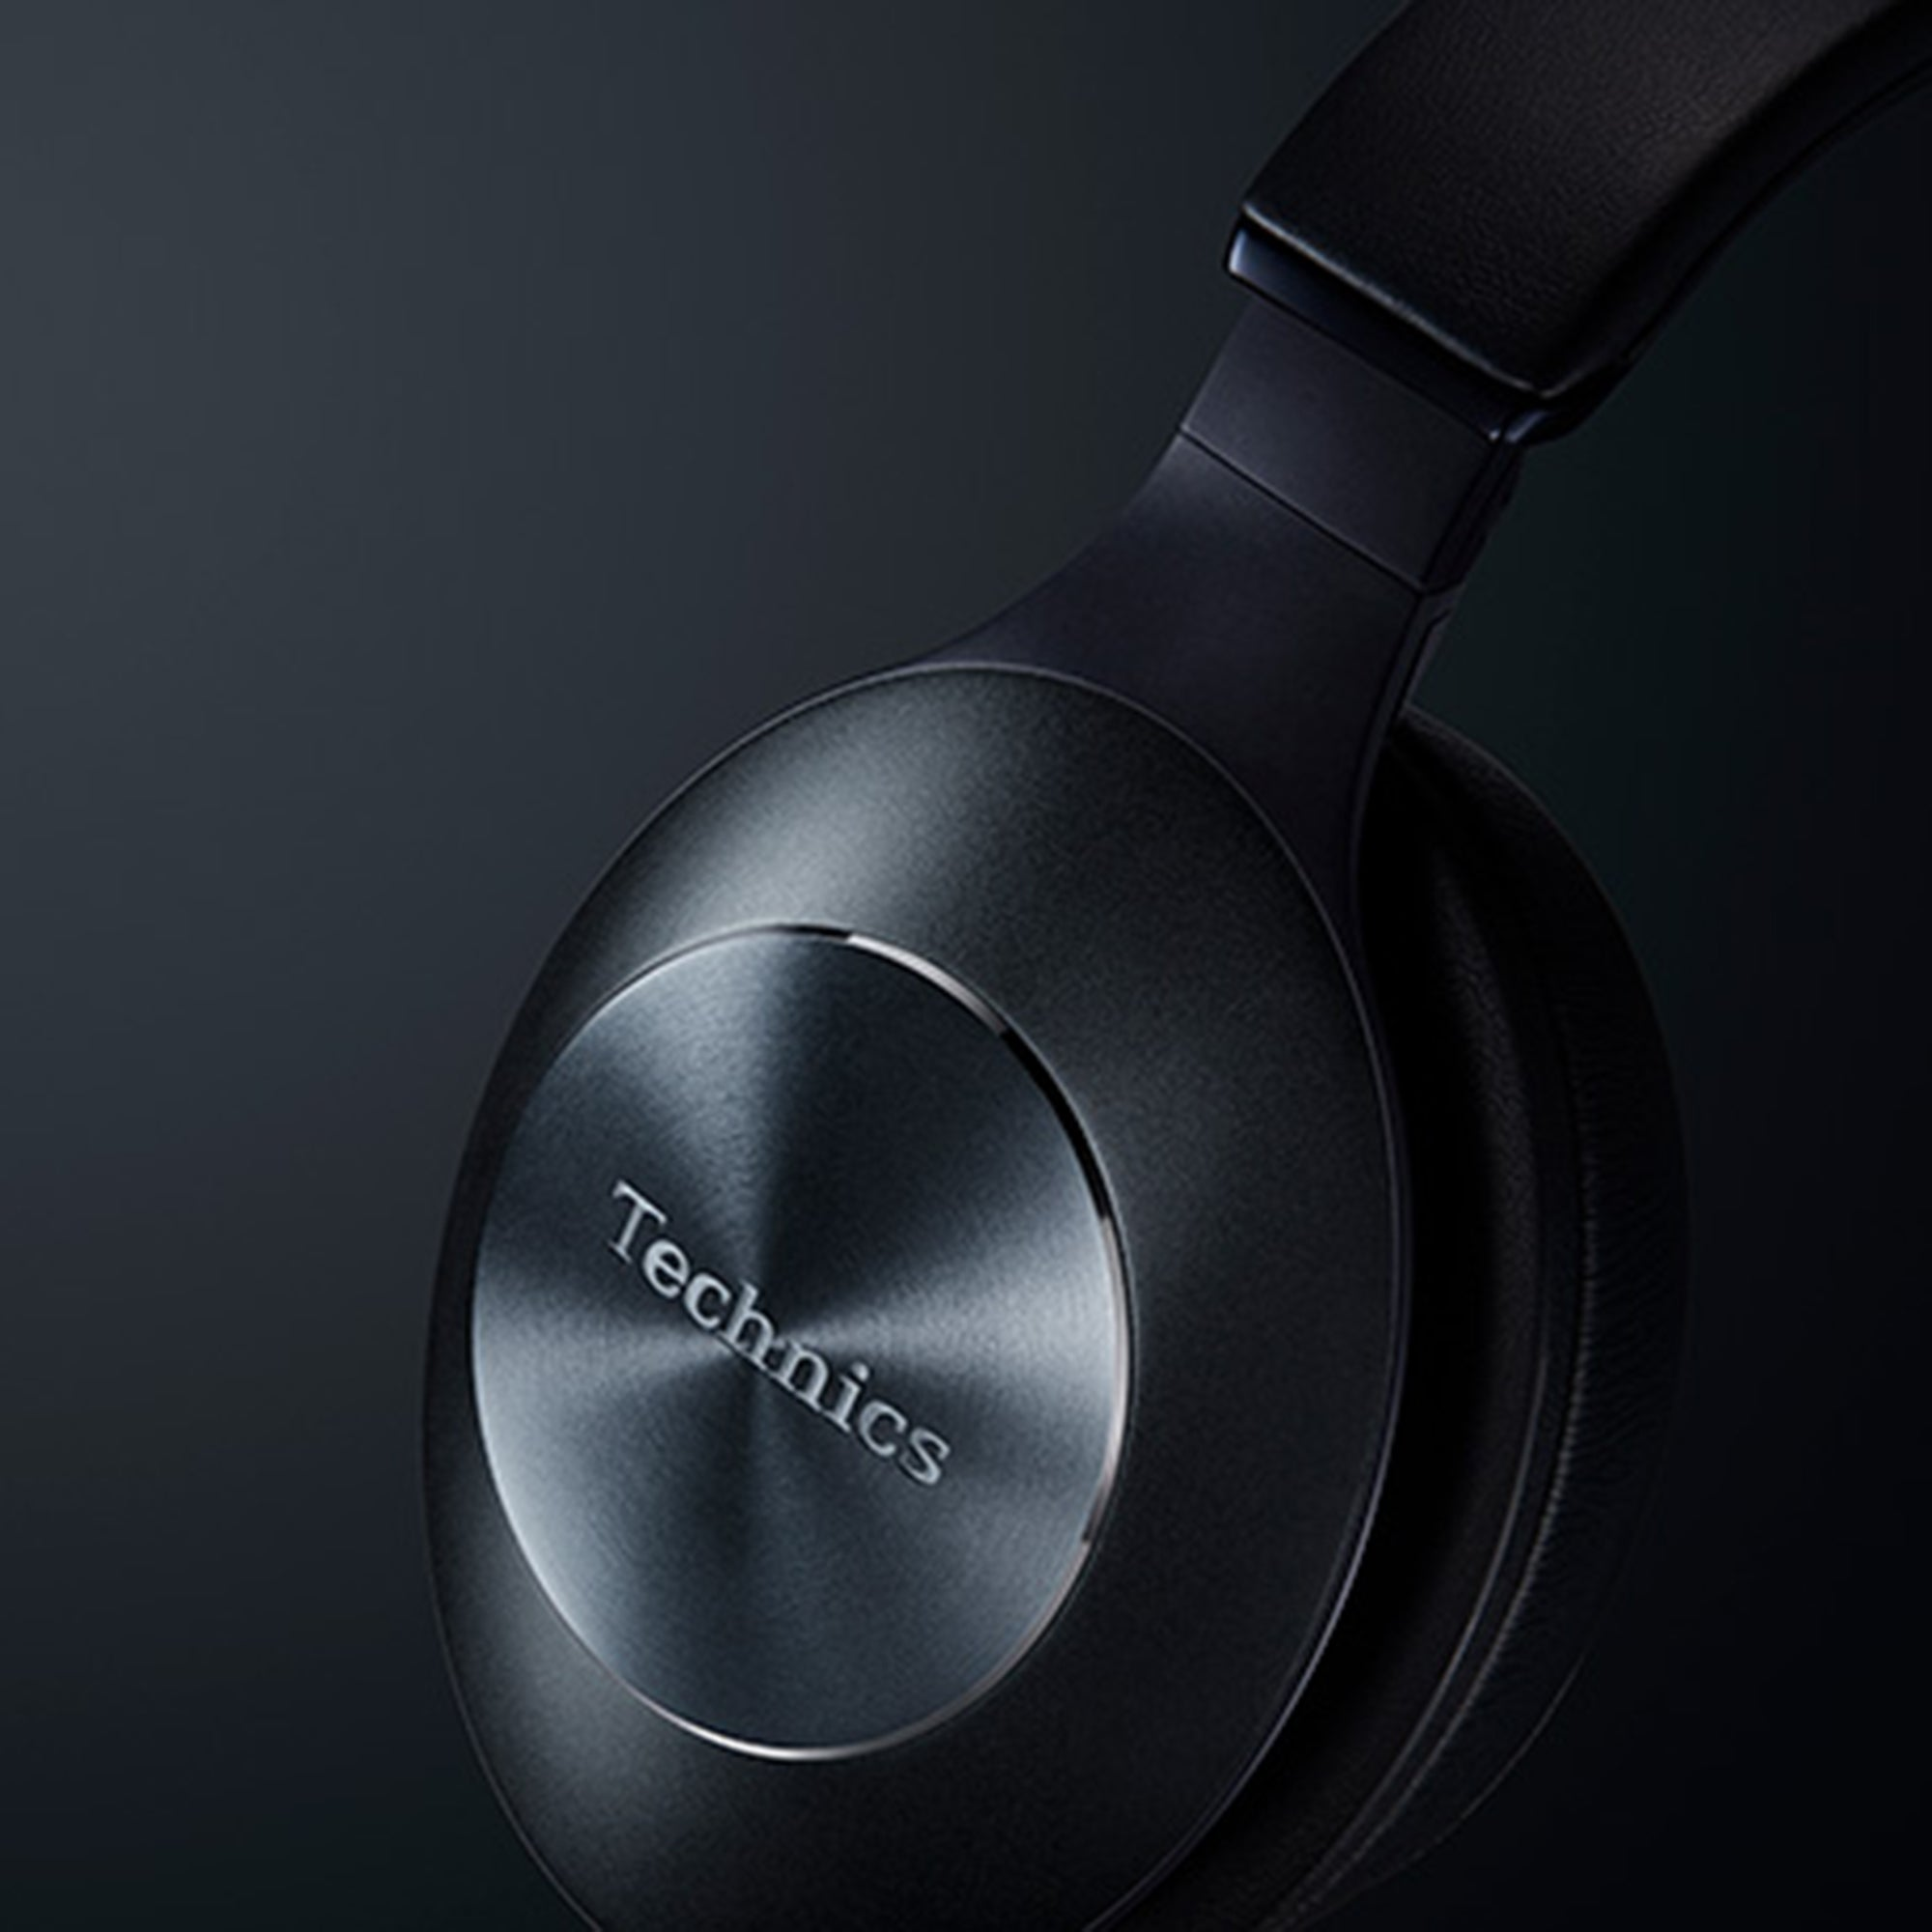 Technics Premium EAH-F70N Noise Cancelling BT Headphones